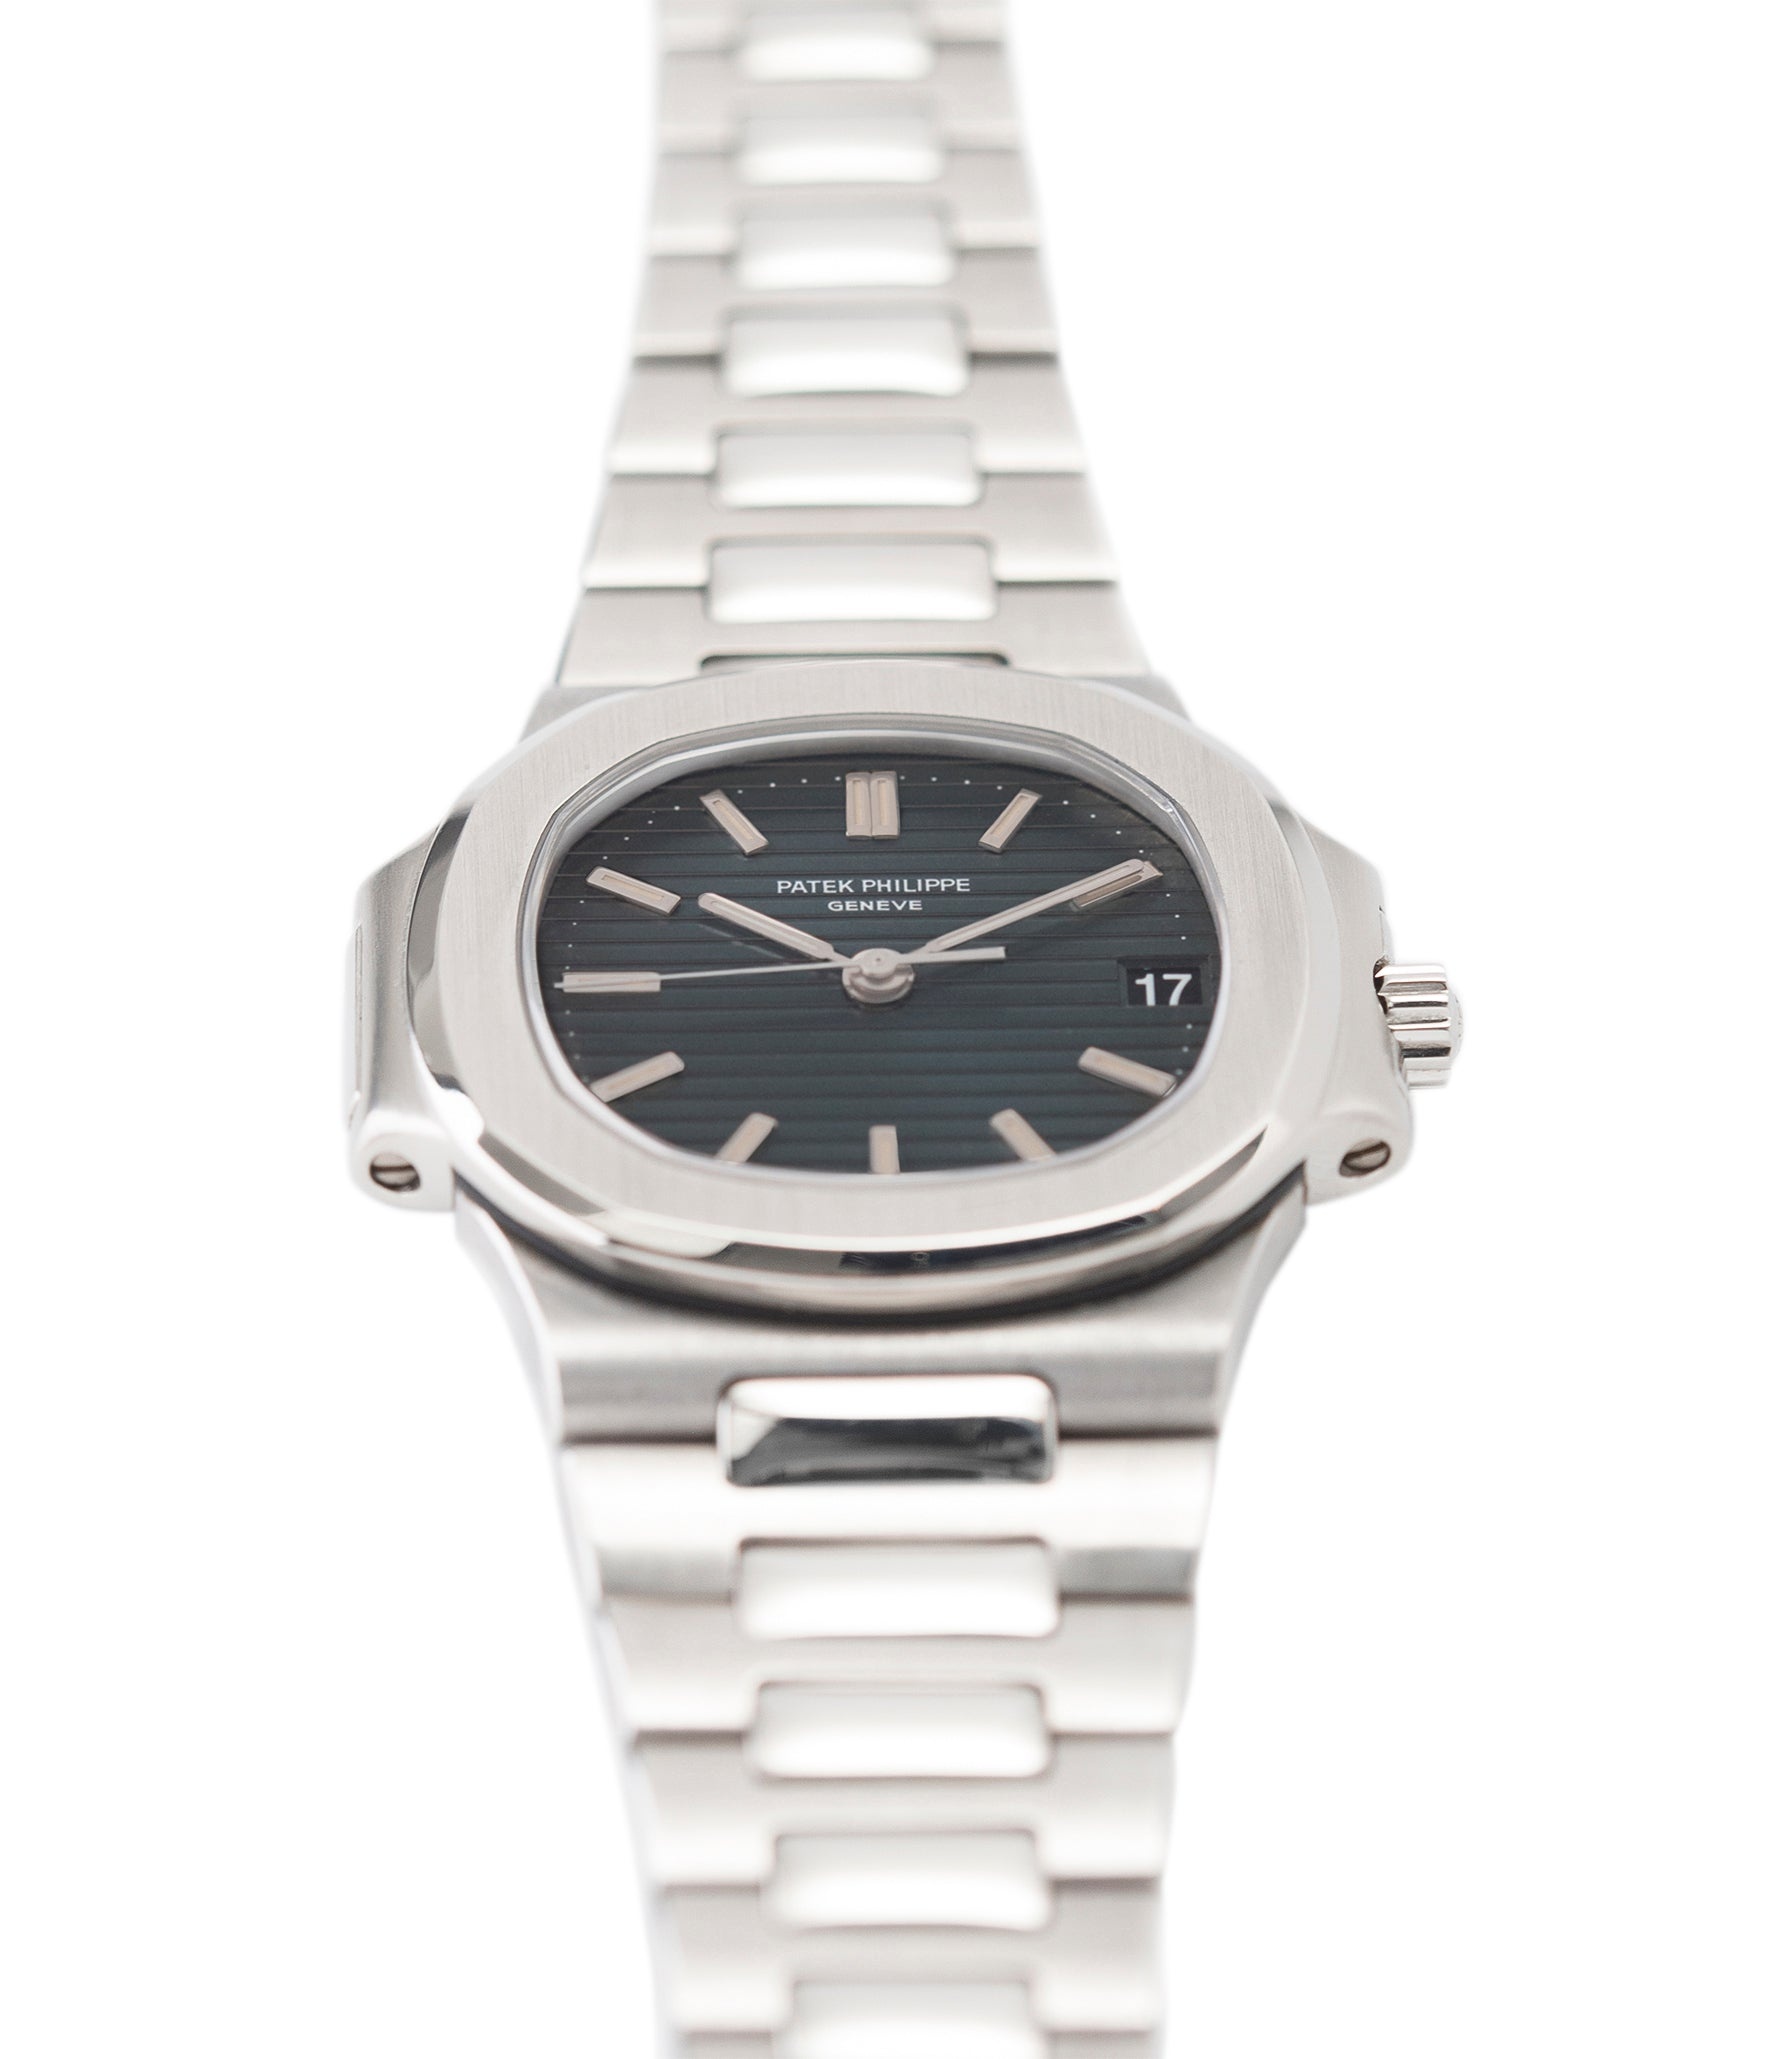 for sale Patek Philippe Nautilus 3800/1 steel vintage luxury watch online at A Collected Man London UK specialised  seller of rare watches